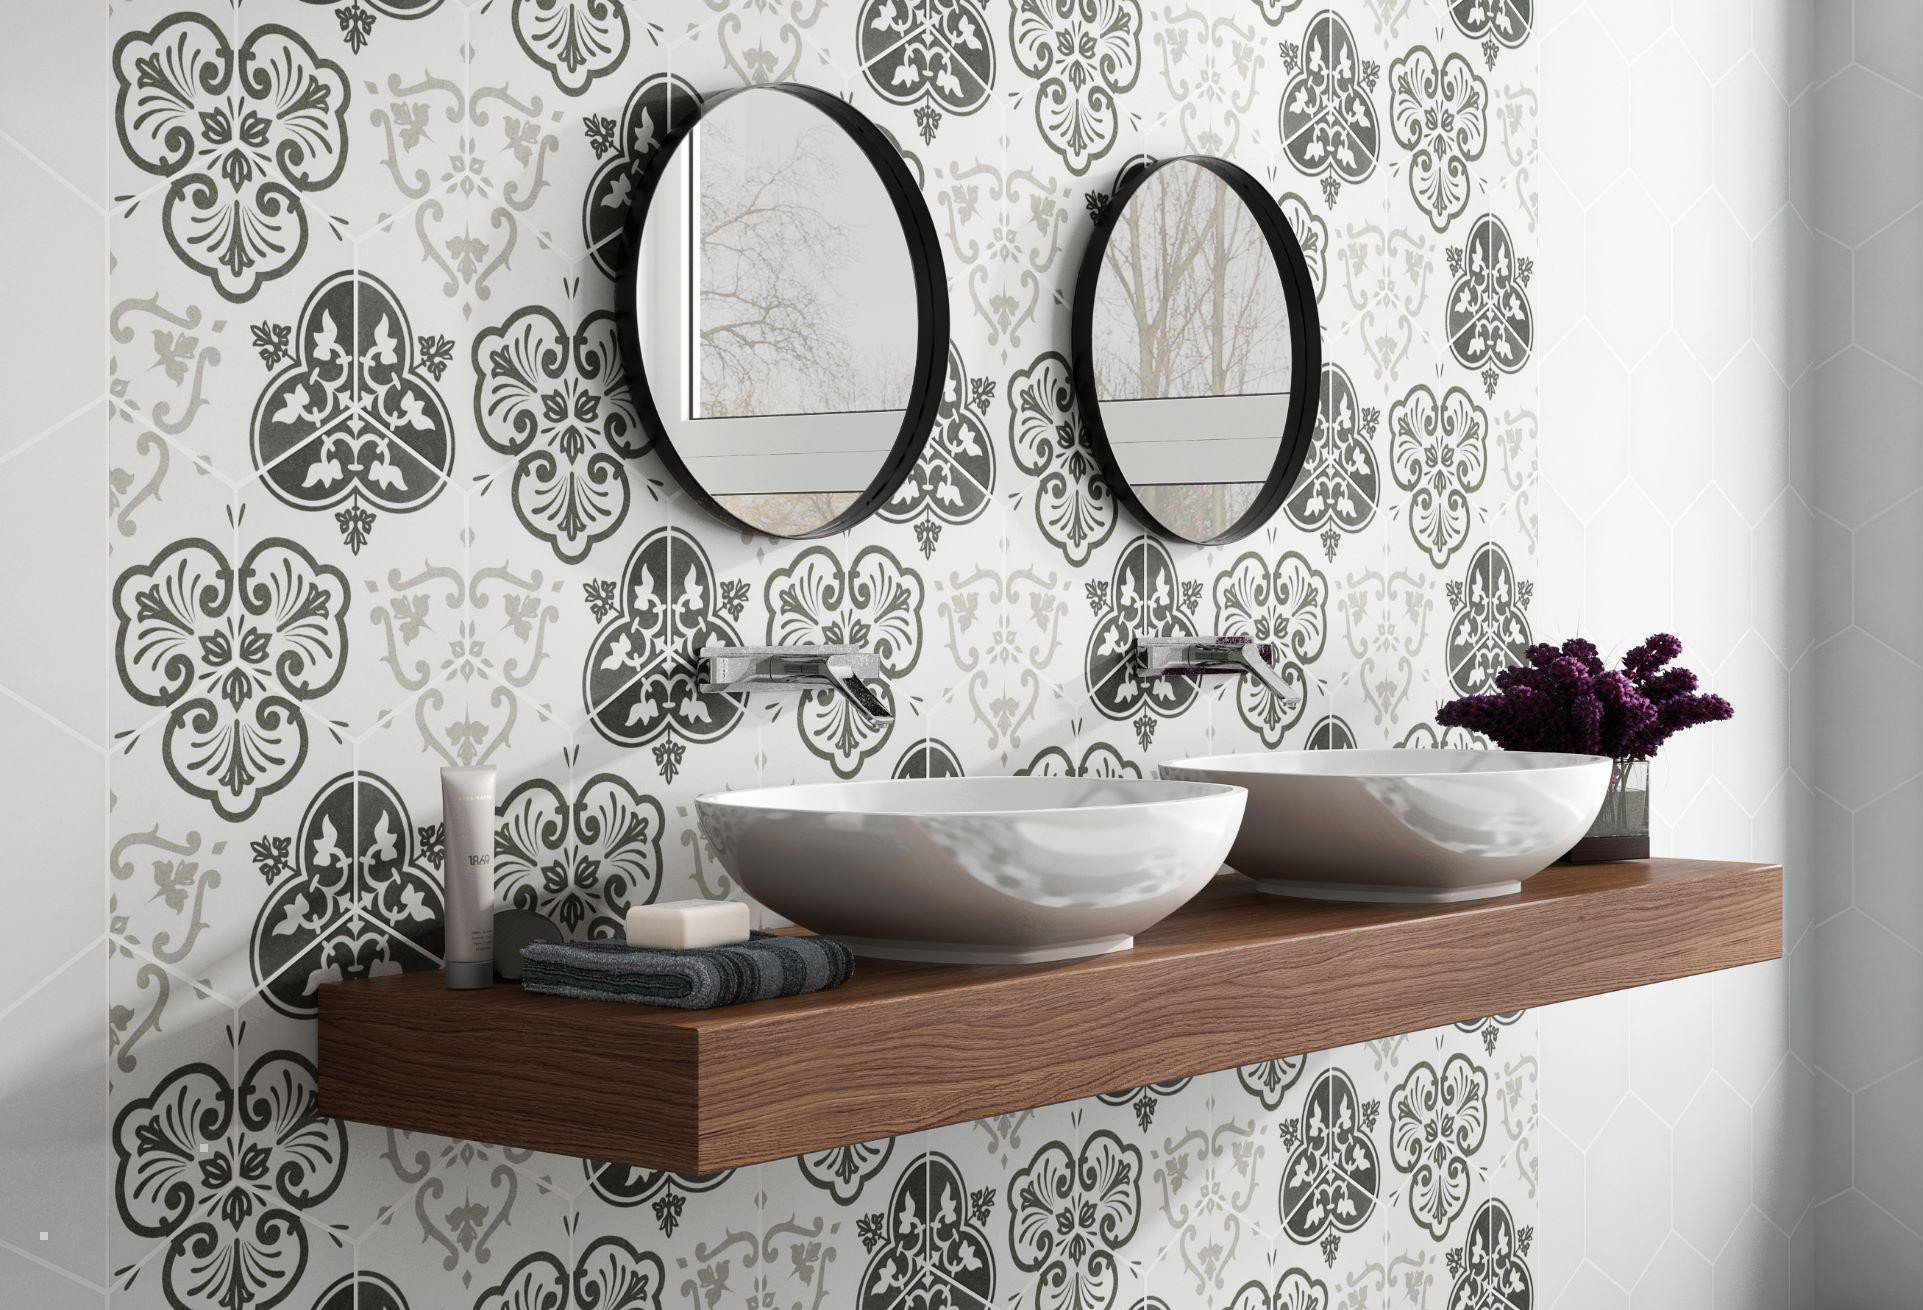 hex25_HEX04F_white_HEX19F_fantasy_mix_natural_250x220mm_bathroom_1.jpg